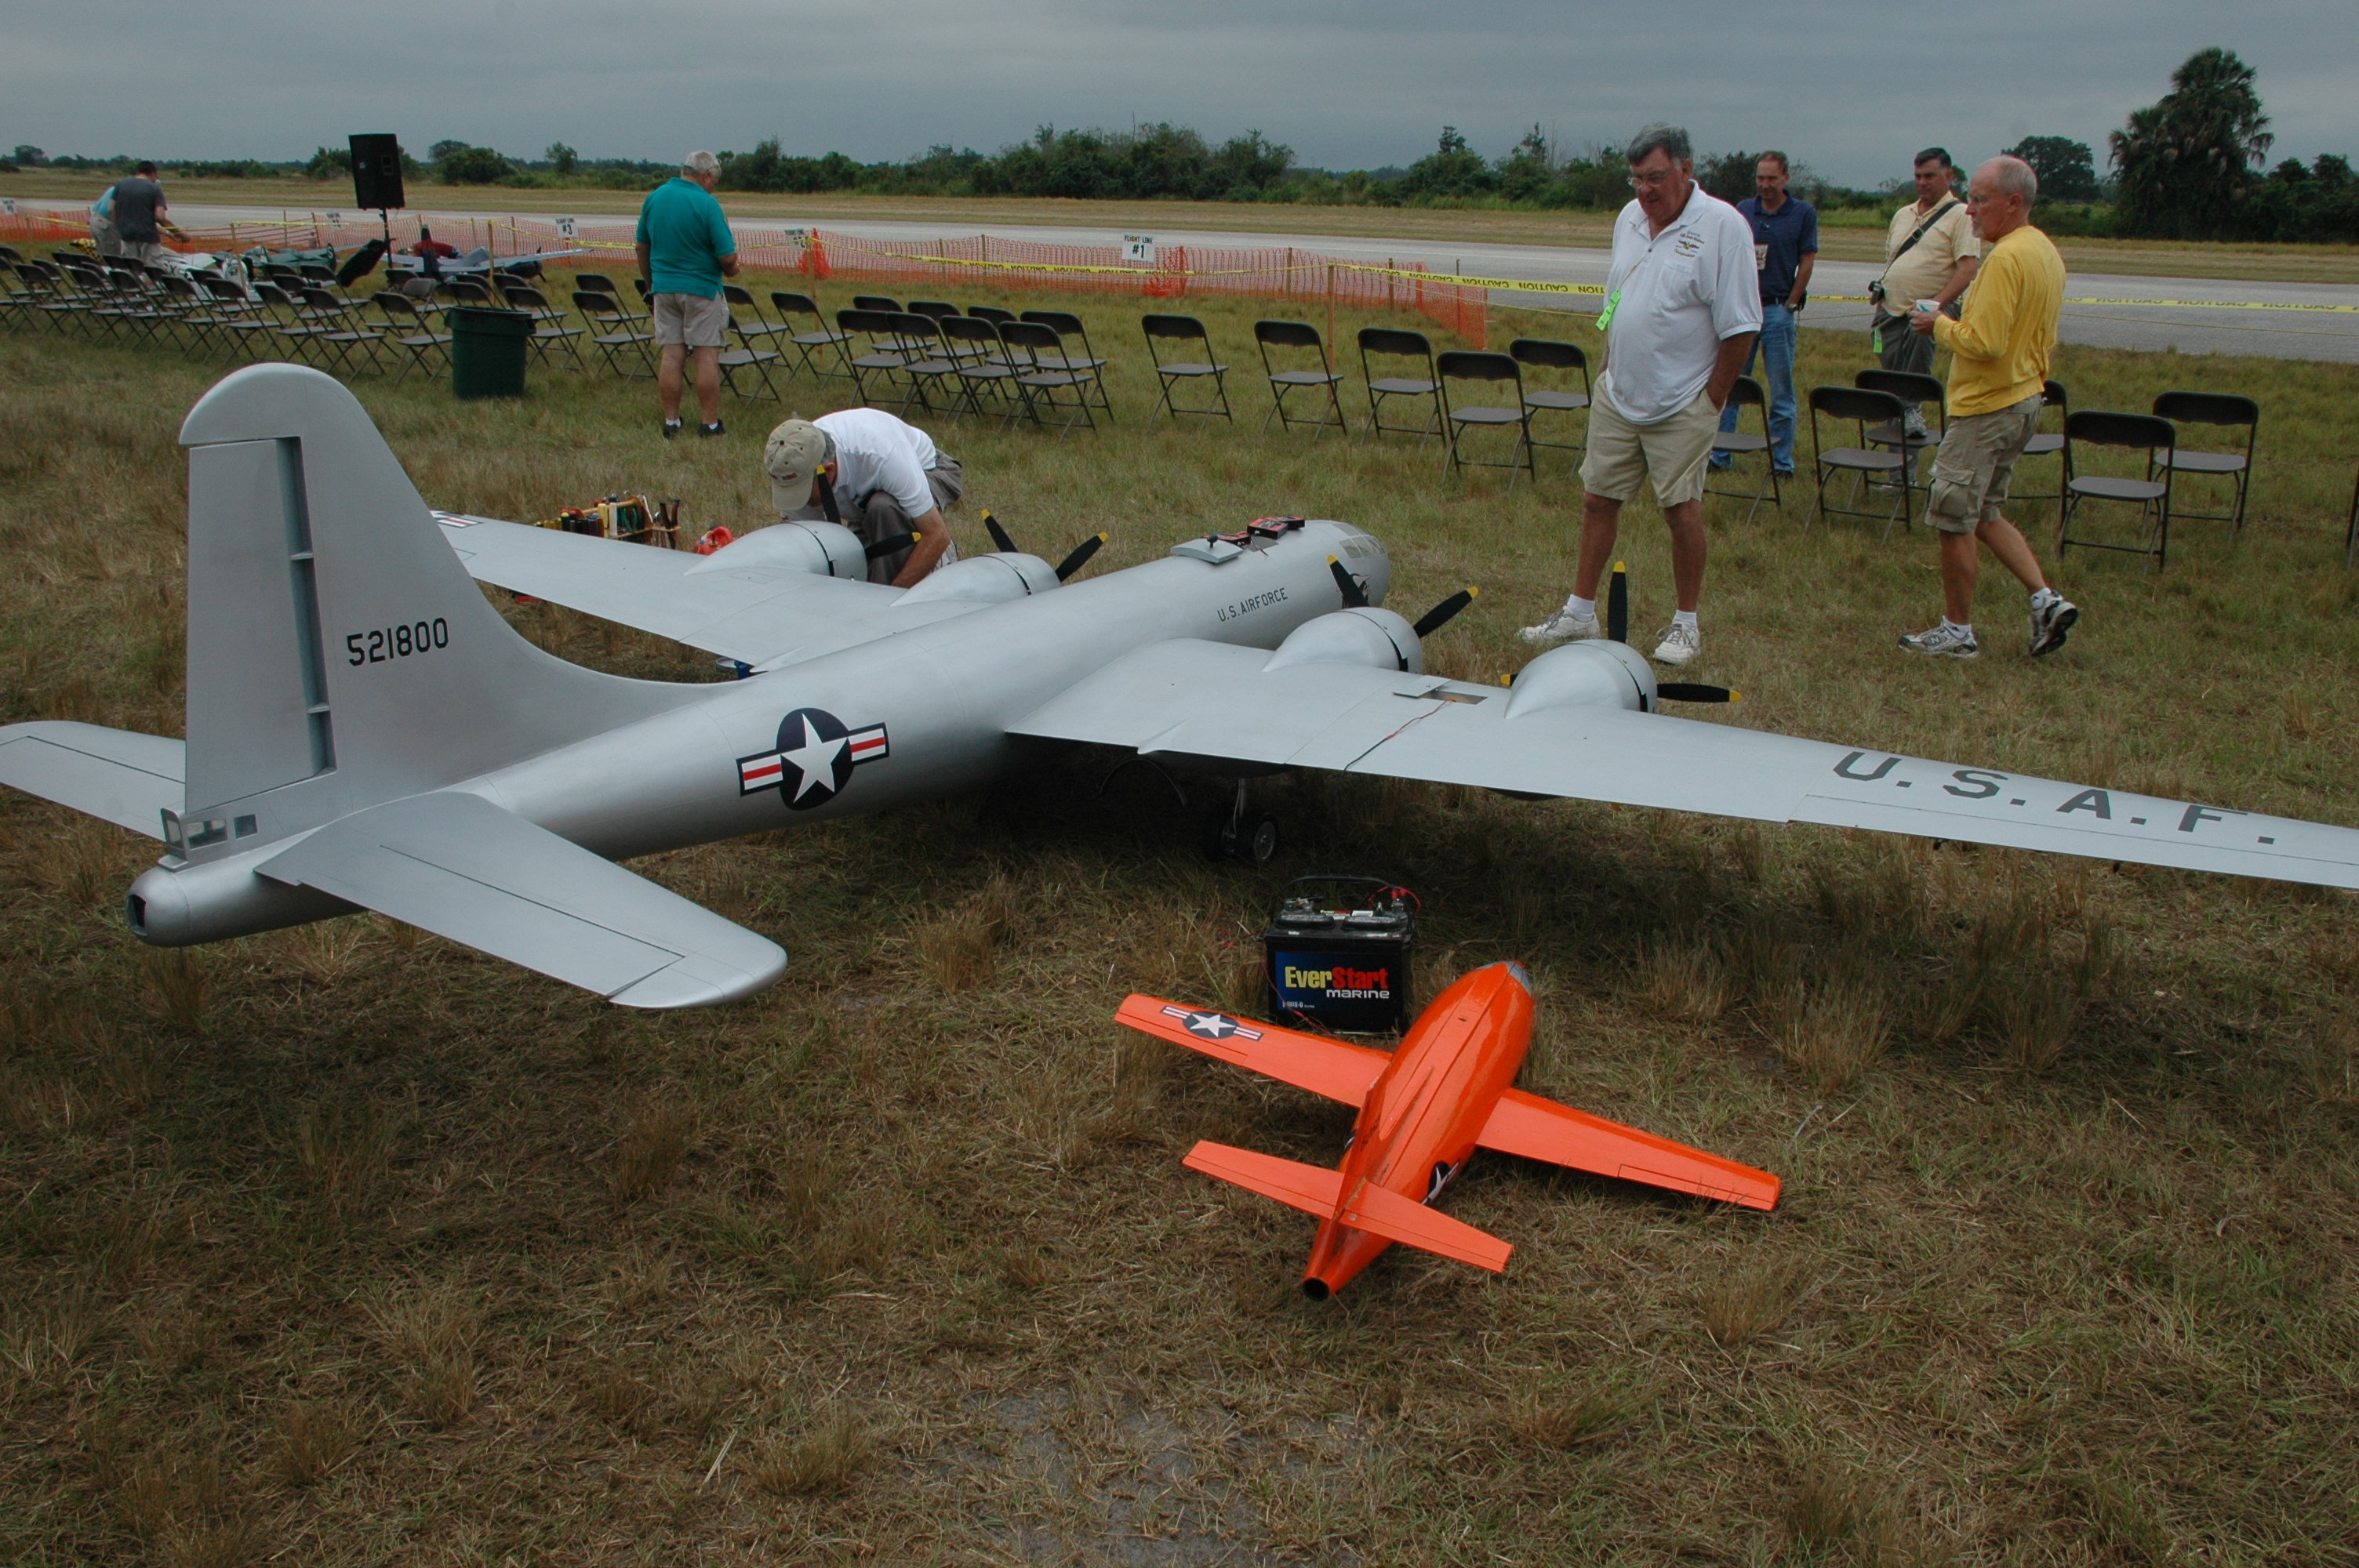 Admirers look at the large radio controlled planes on display at the Top Gun event